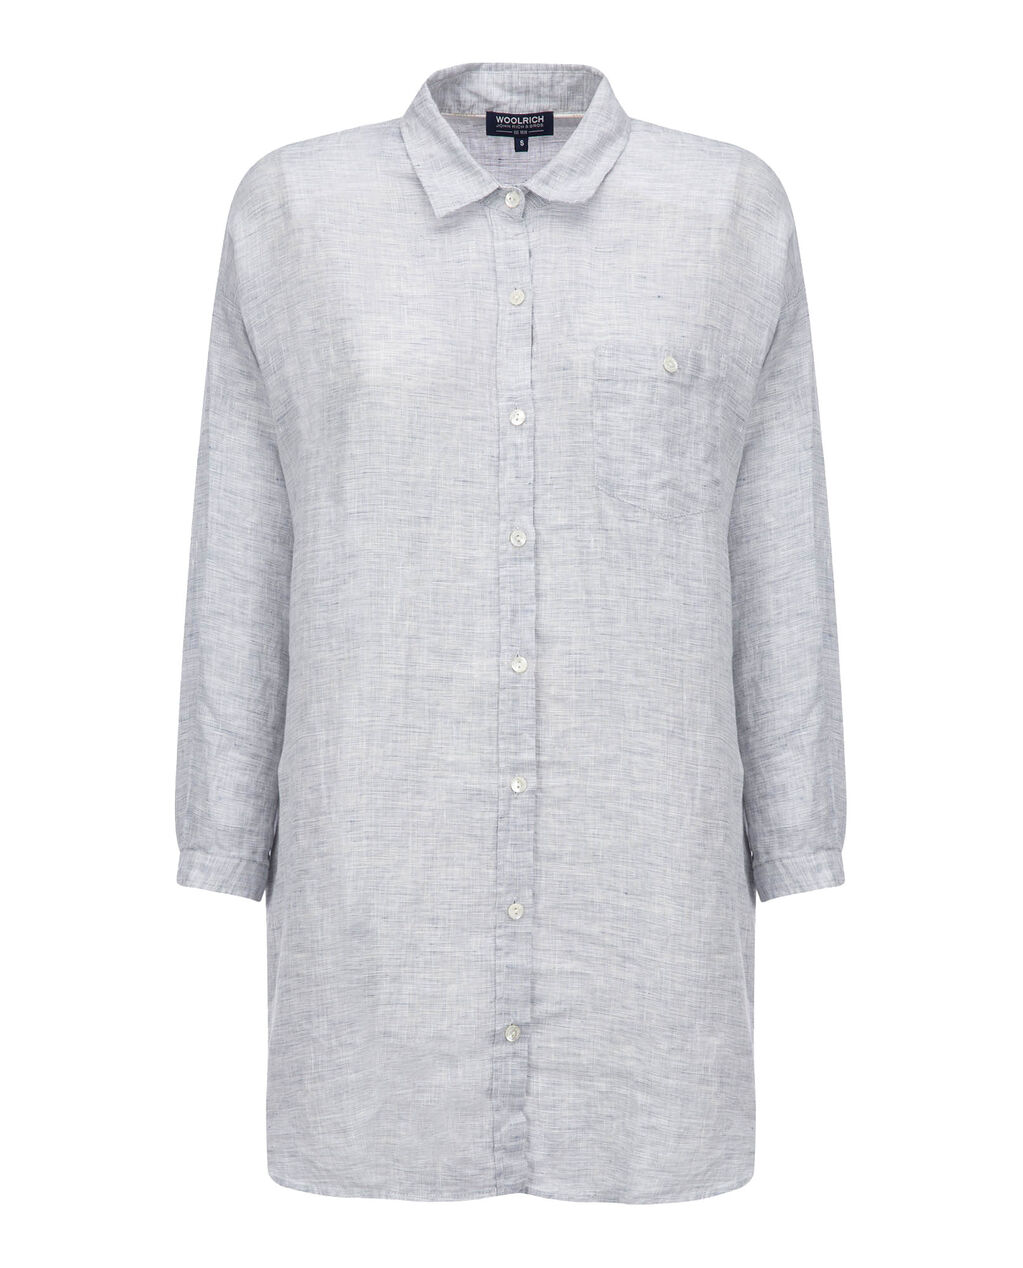 W'S Linen Ls Shirt, FADED BLUE, hi-res